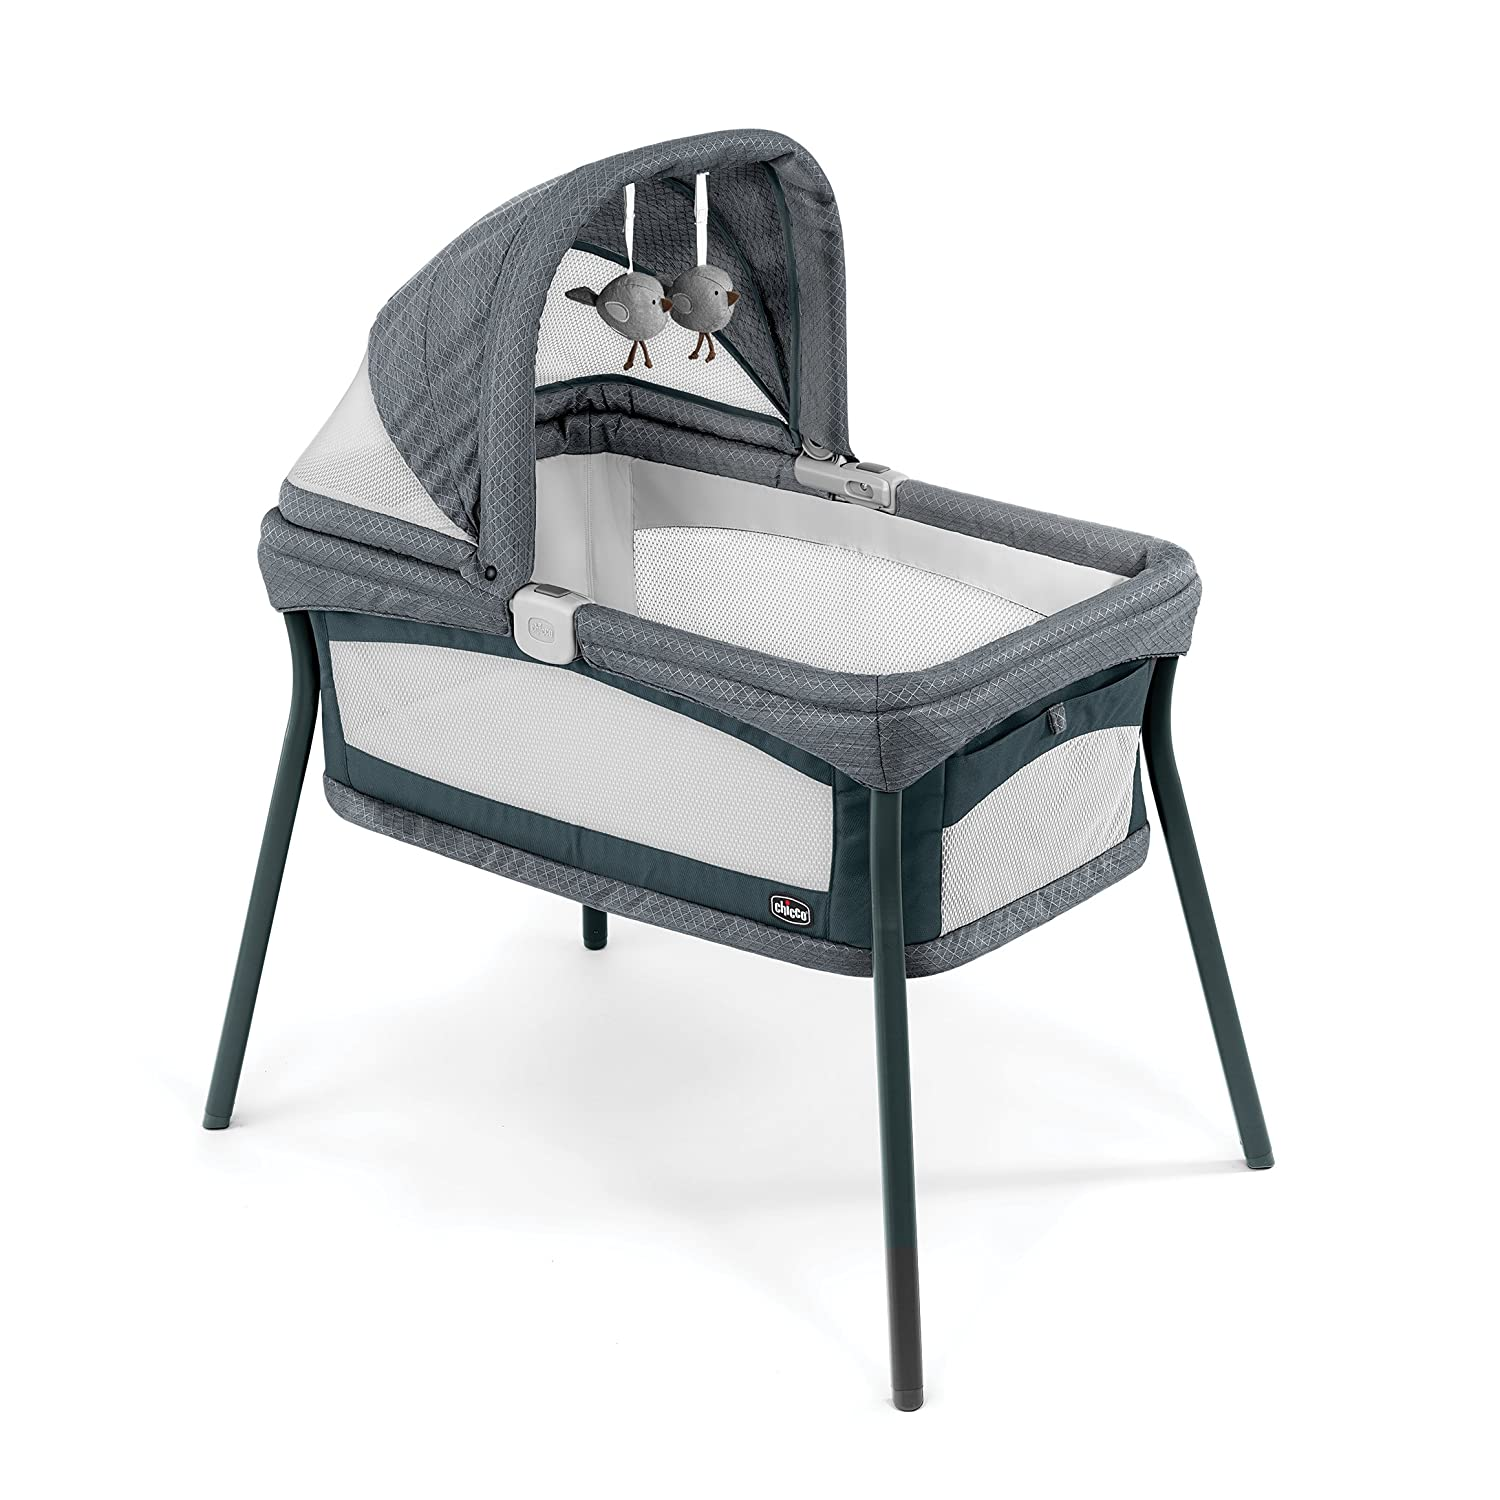 Chicco LullaGo Nest Portable Bassinet, Poetic 05079670080070